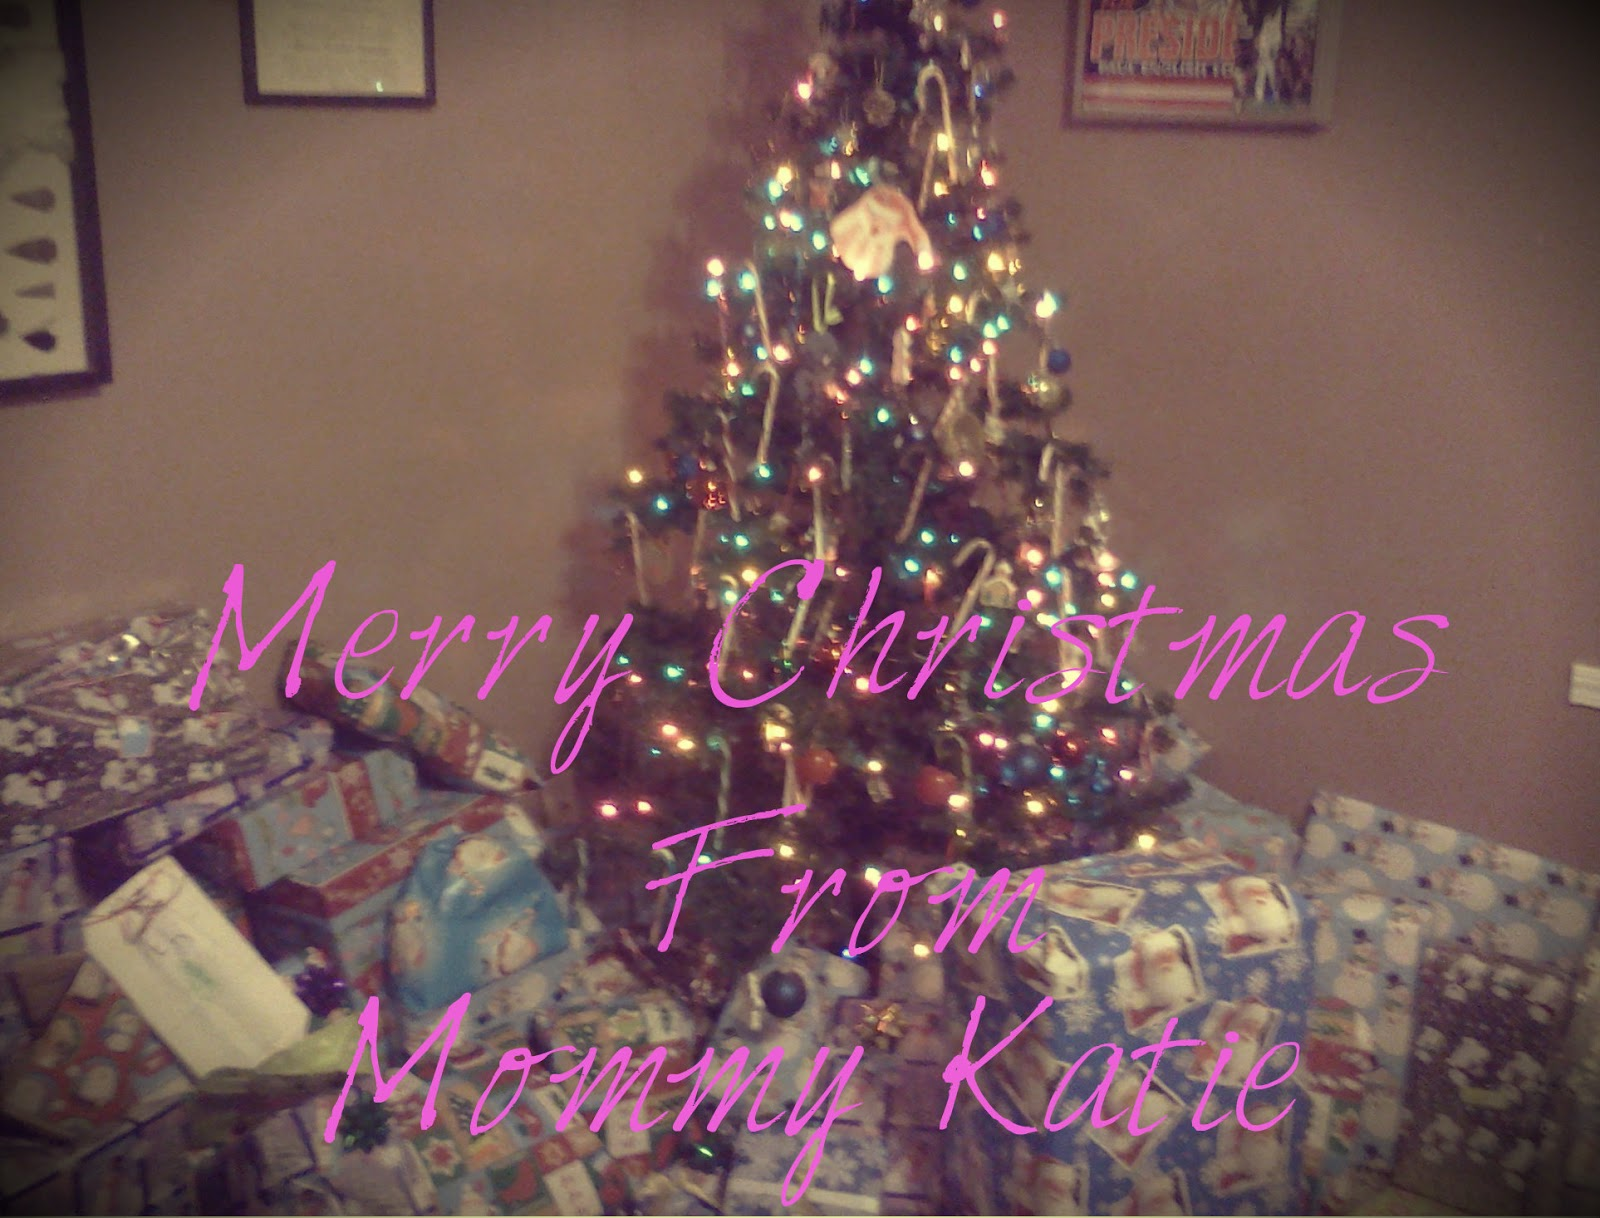 Merry Christmas To All, From Mommy Katie!!